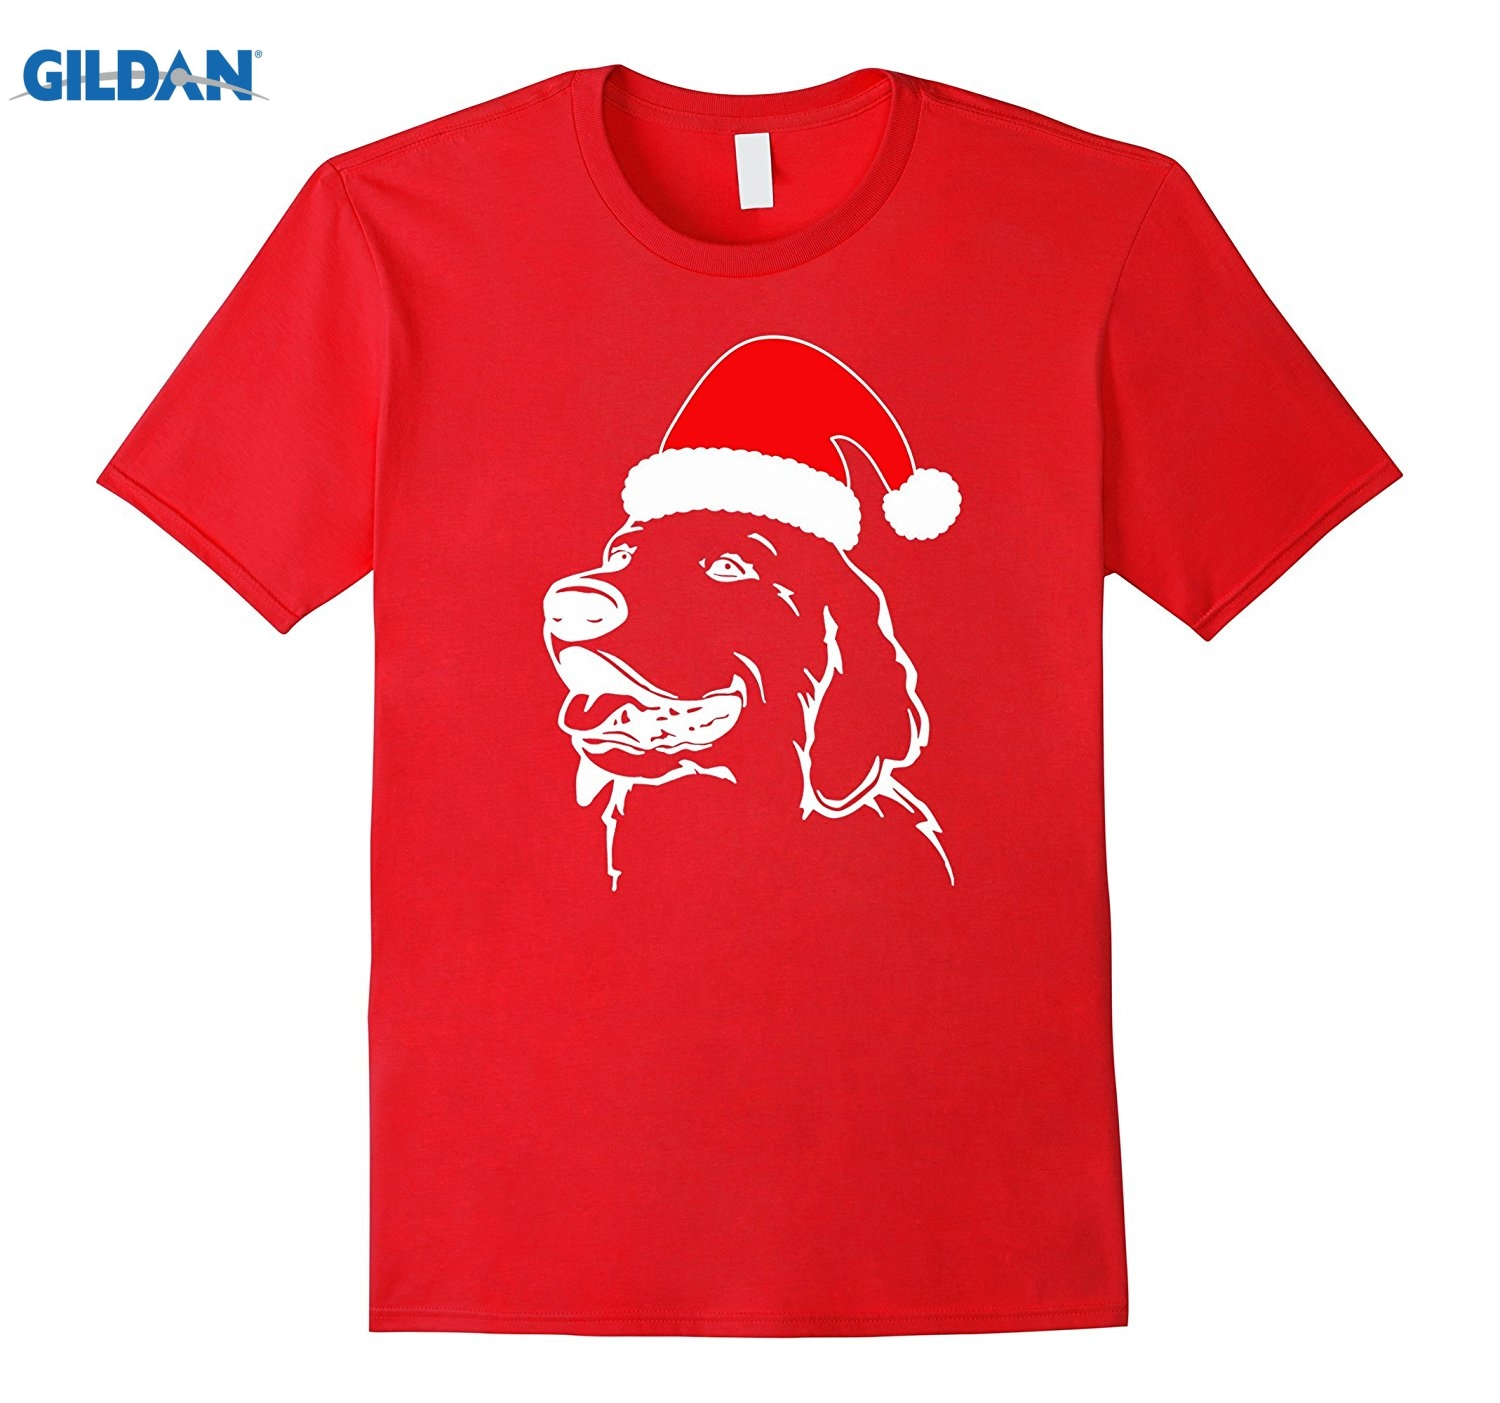 GILDAN Best gifts for Golden Retriever owners ugly christmas tshirt